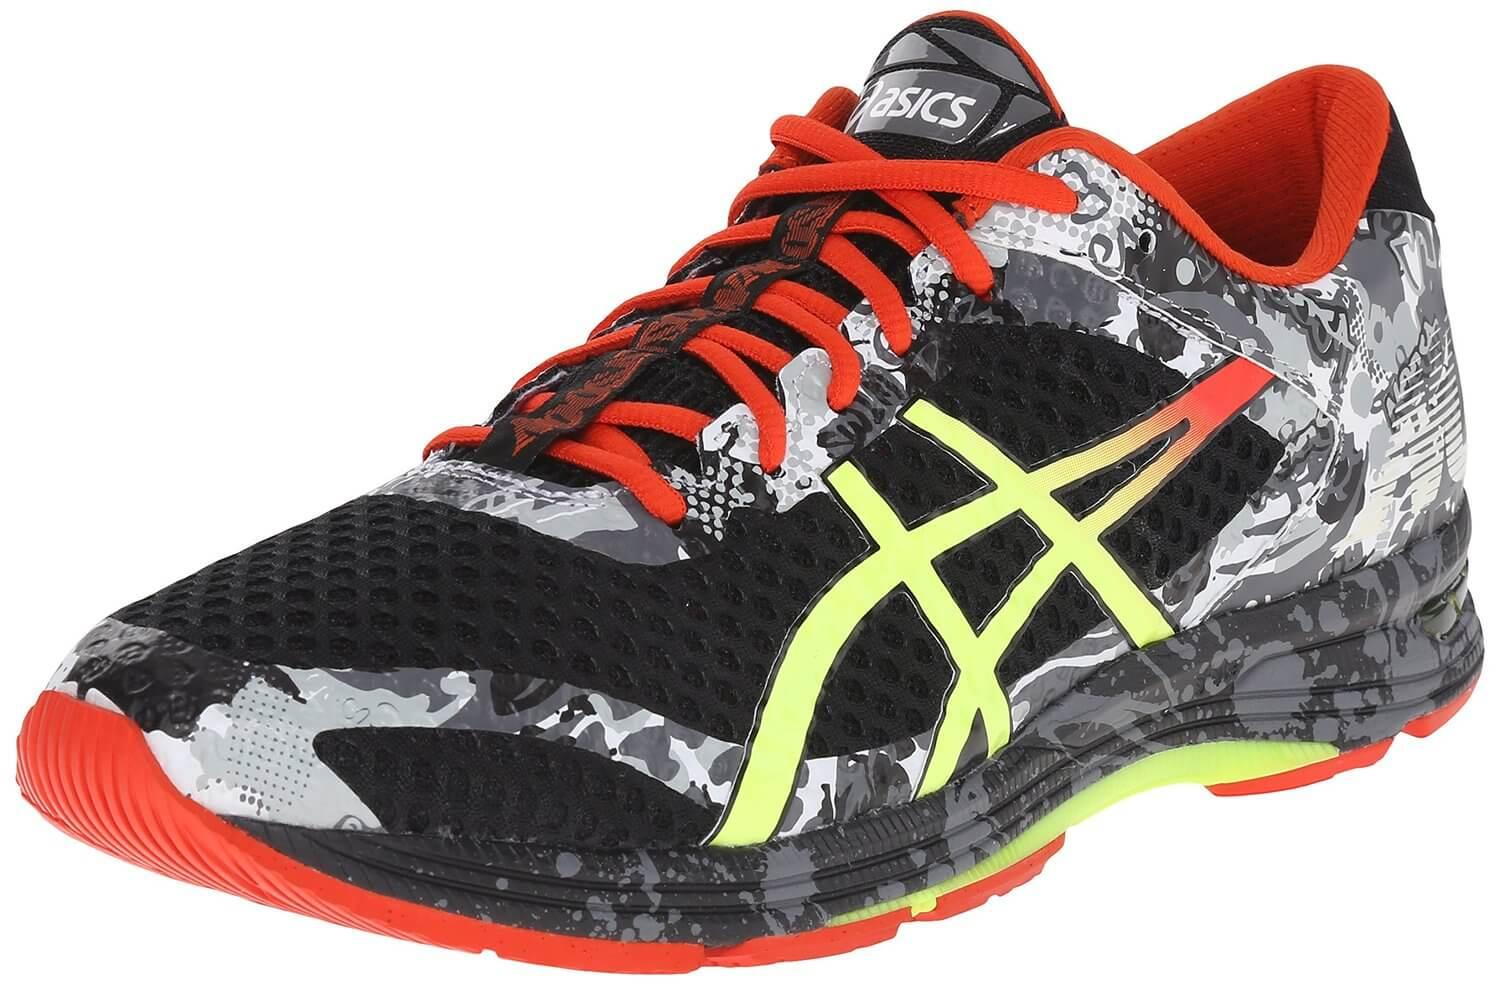 the Asics Gel Noosa Tri 11 is a mid-stability shoe that offers a great amount of comfort